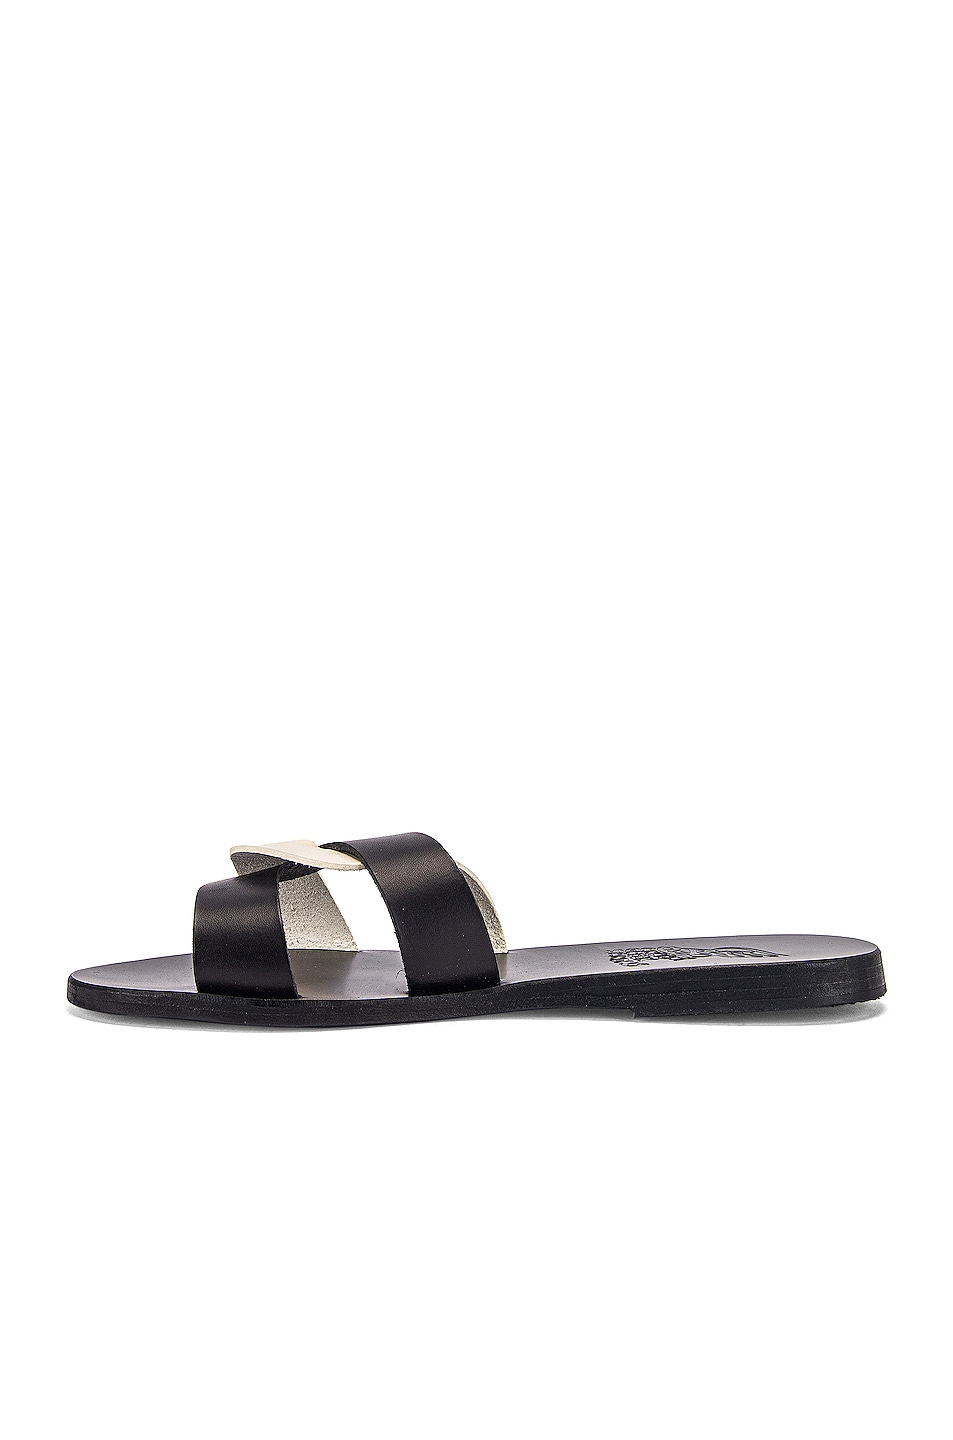 Image 5 of Ancient Greek Sandals Desmos Sandals in Black & Off White